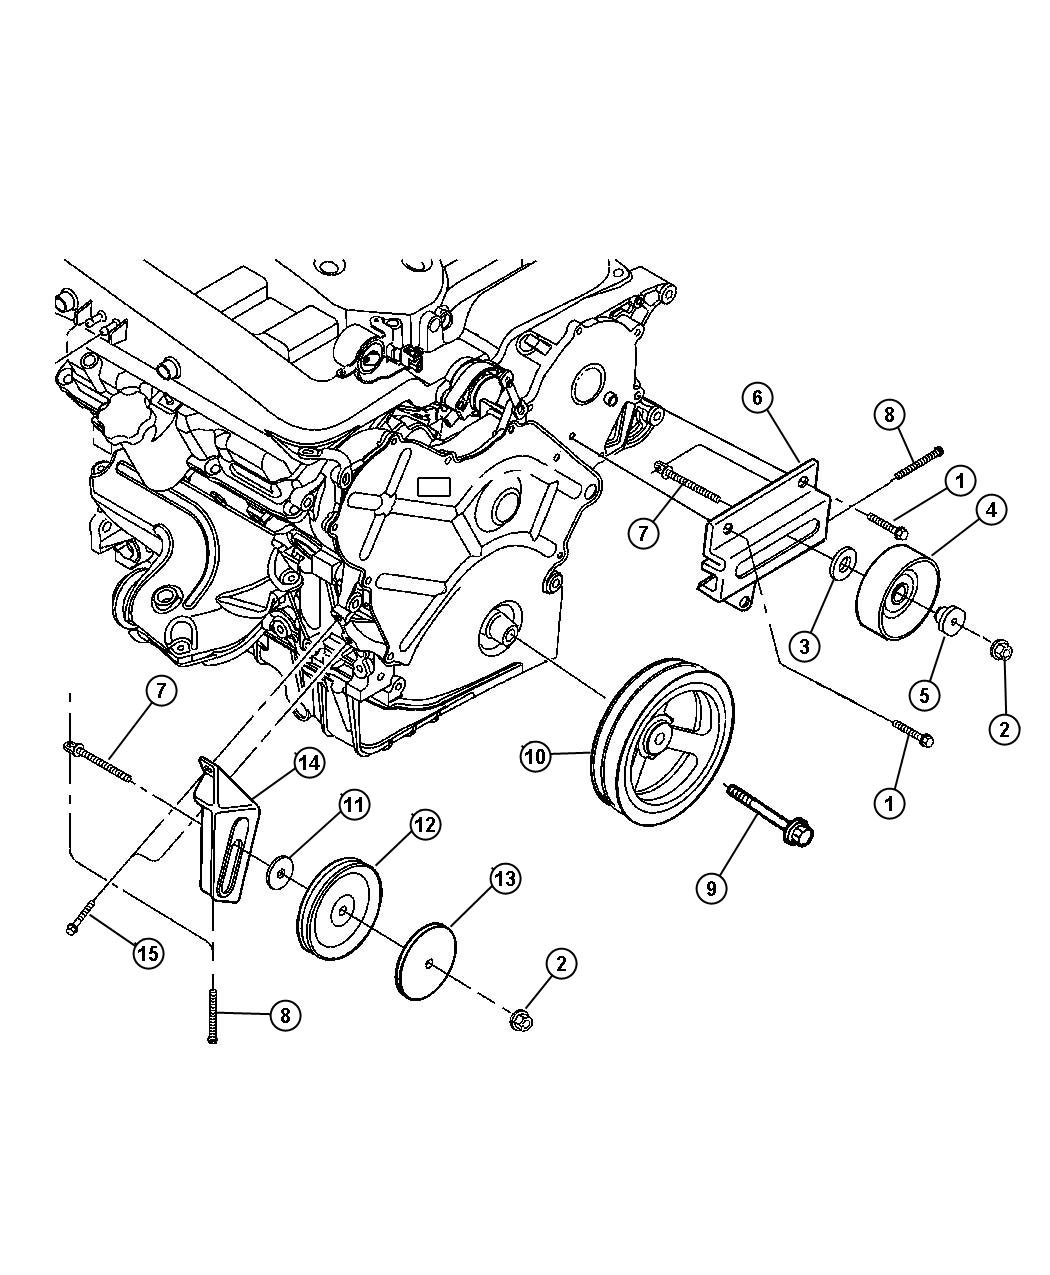 2000 dodge intrepid parts diagram case ih wiring picture of chrysler 300 motor and engine parts, picture, free image for user manual download